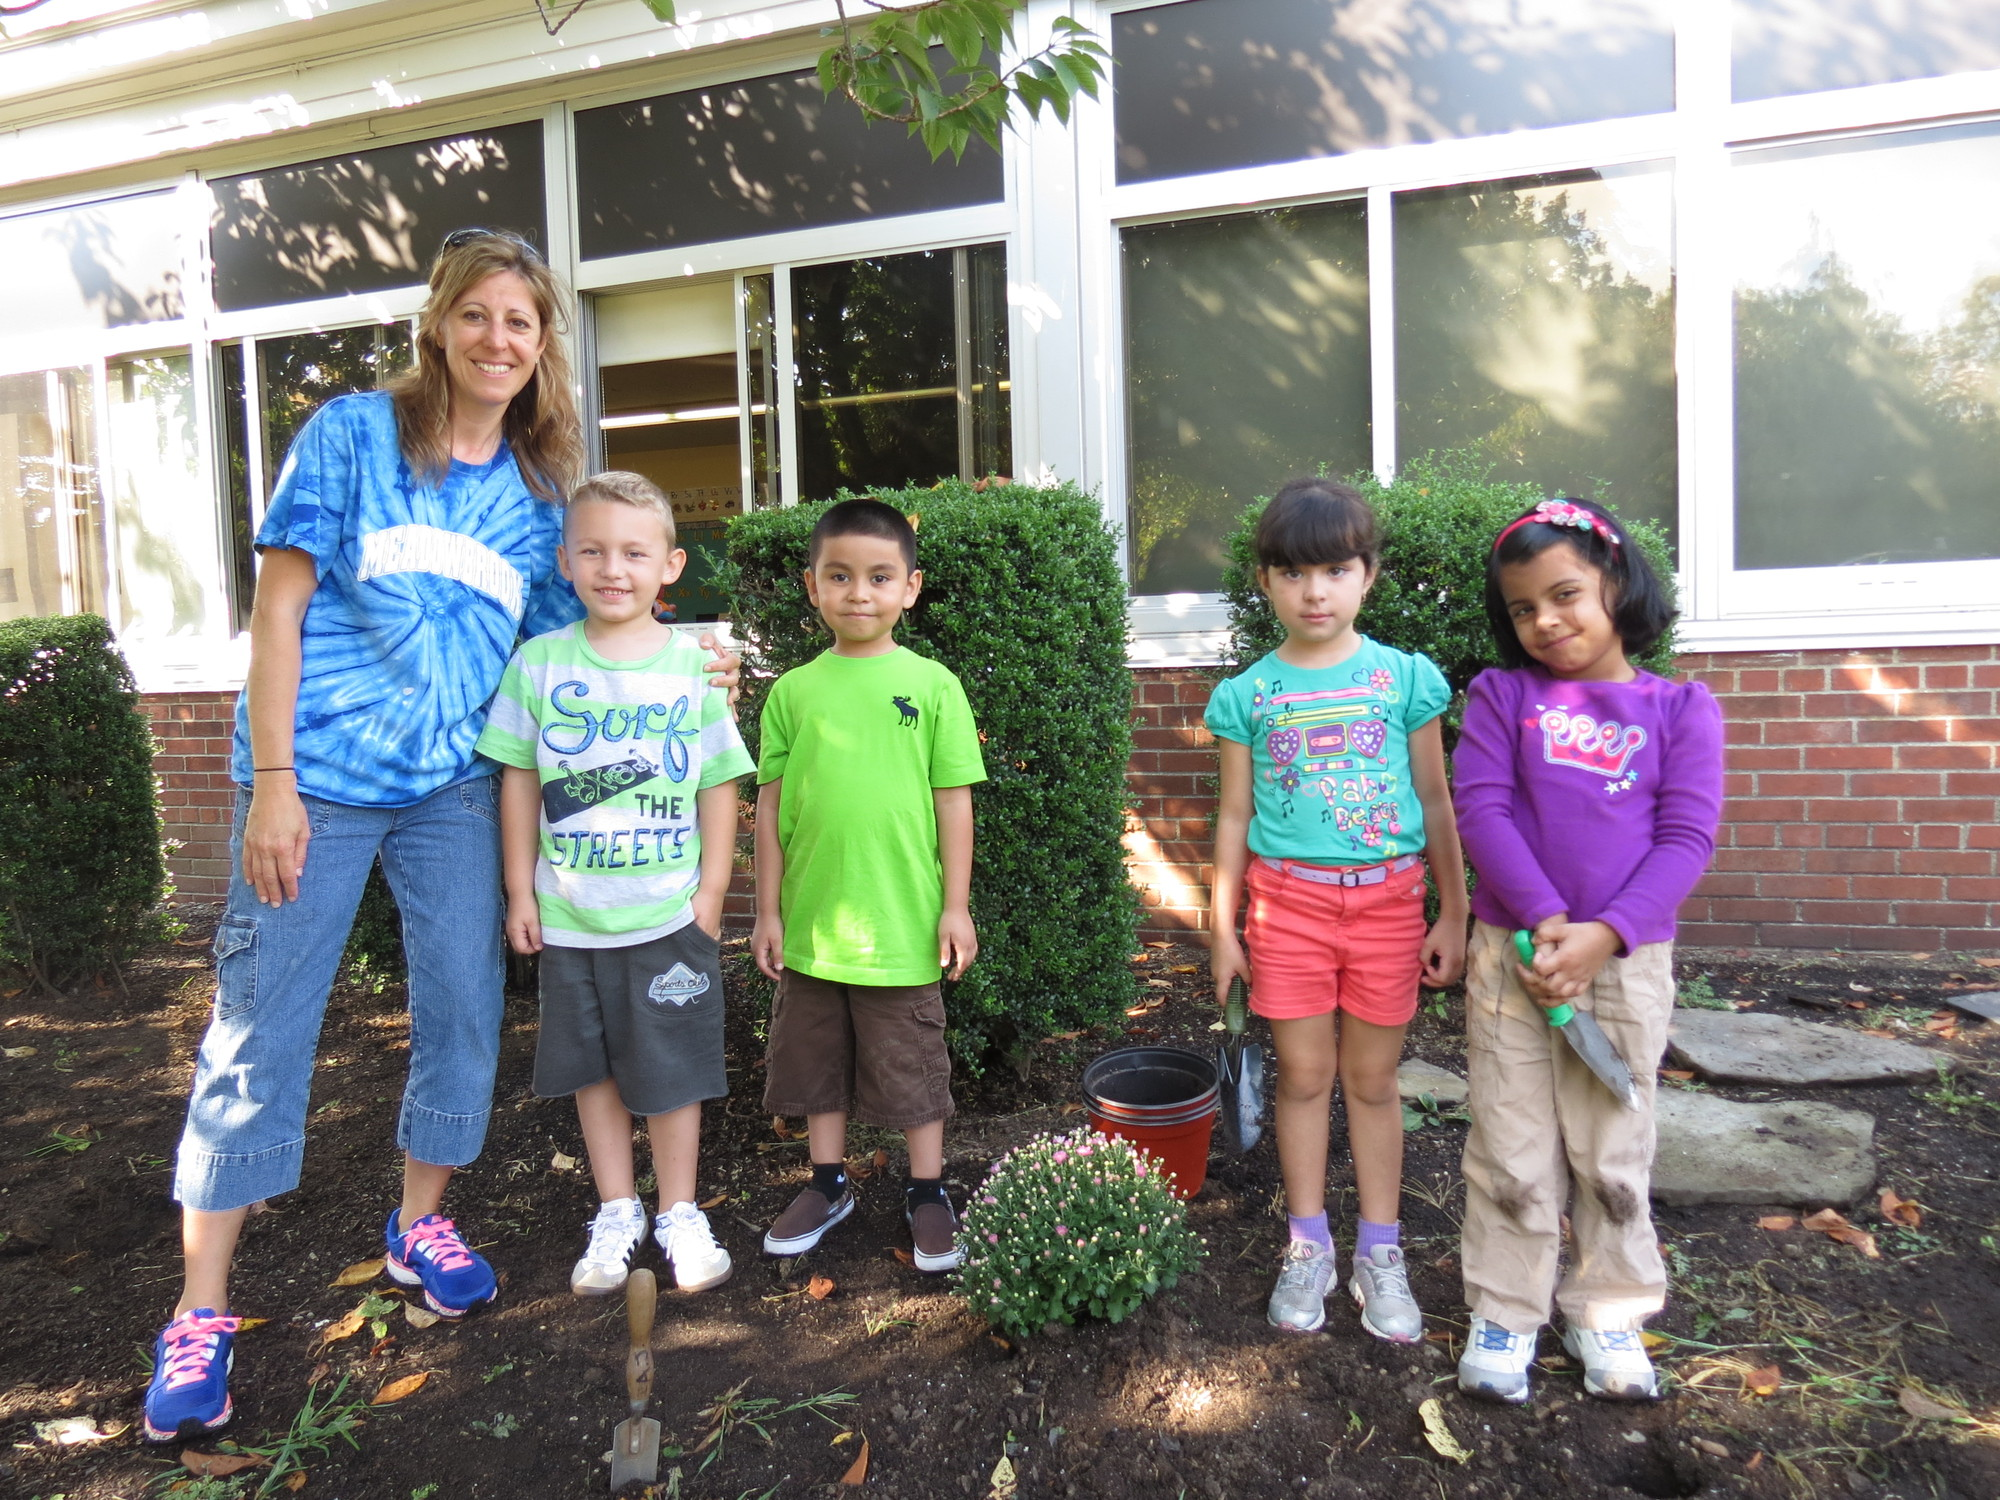 Kindergarten teacher Maria Balsamo and her students worked together to improve the school